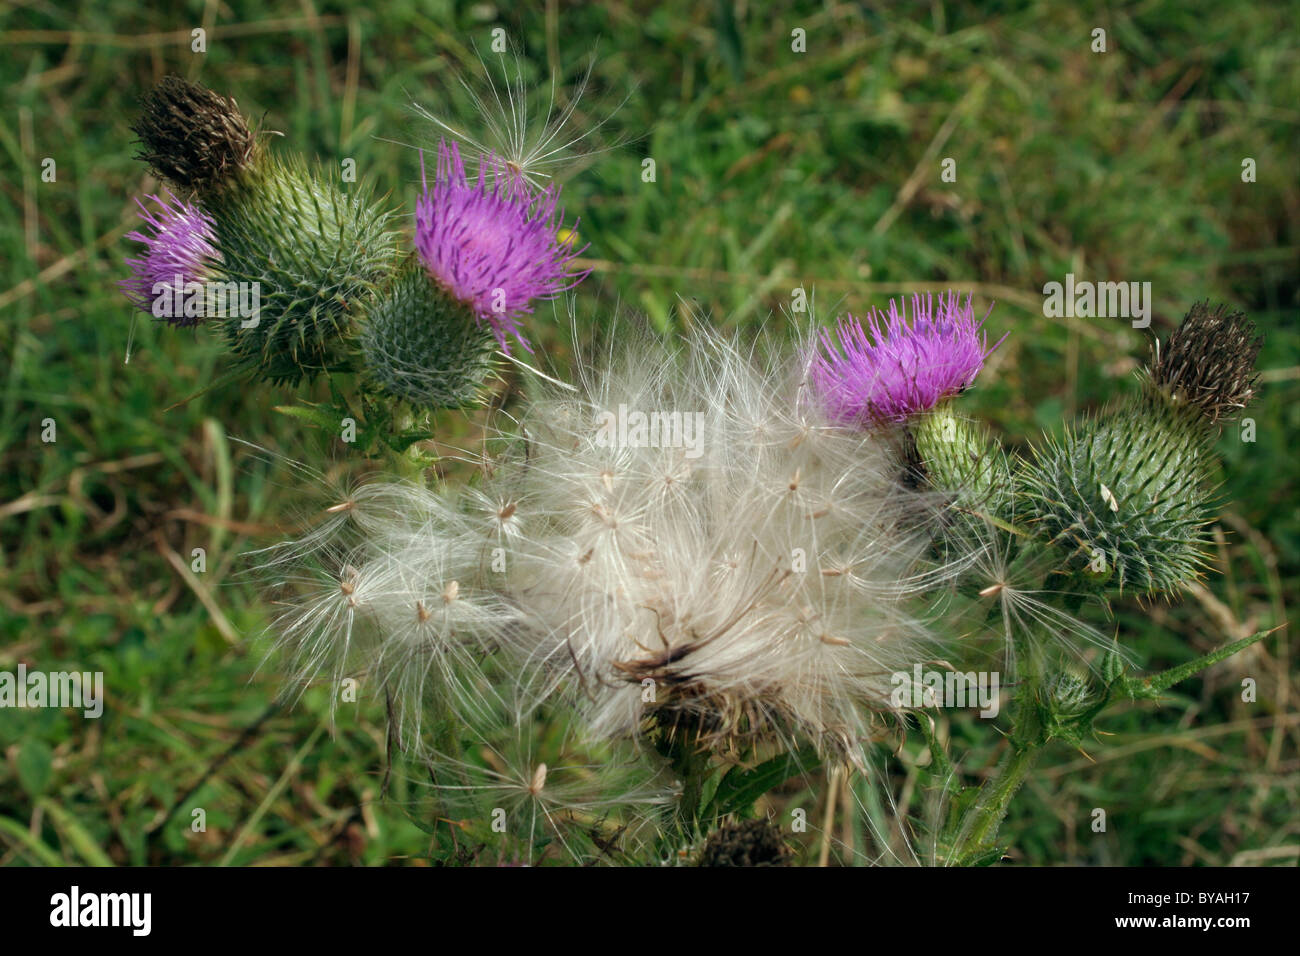 Spear thistle (Cirsium vulgare : Asteraceae) in flower and releasing fruits, UK. - Stock Image